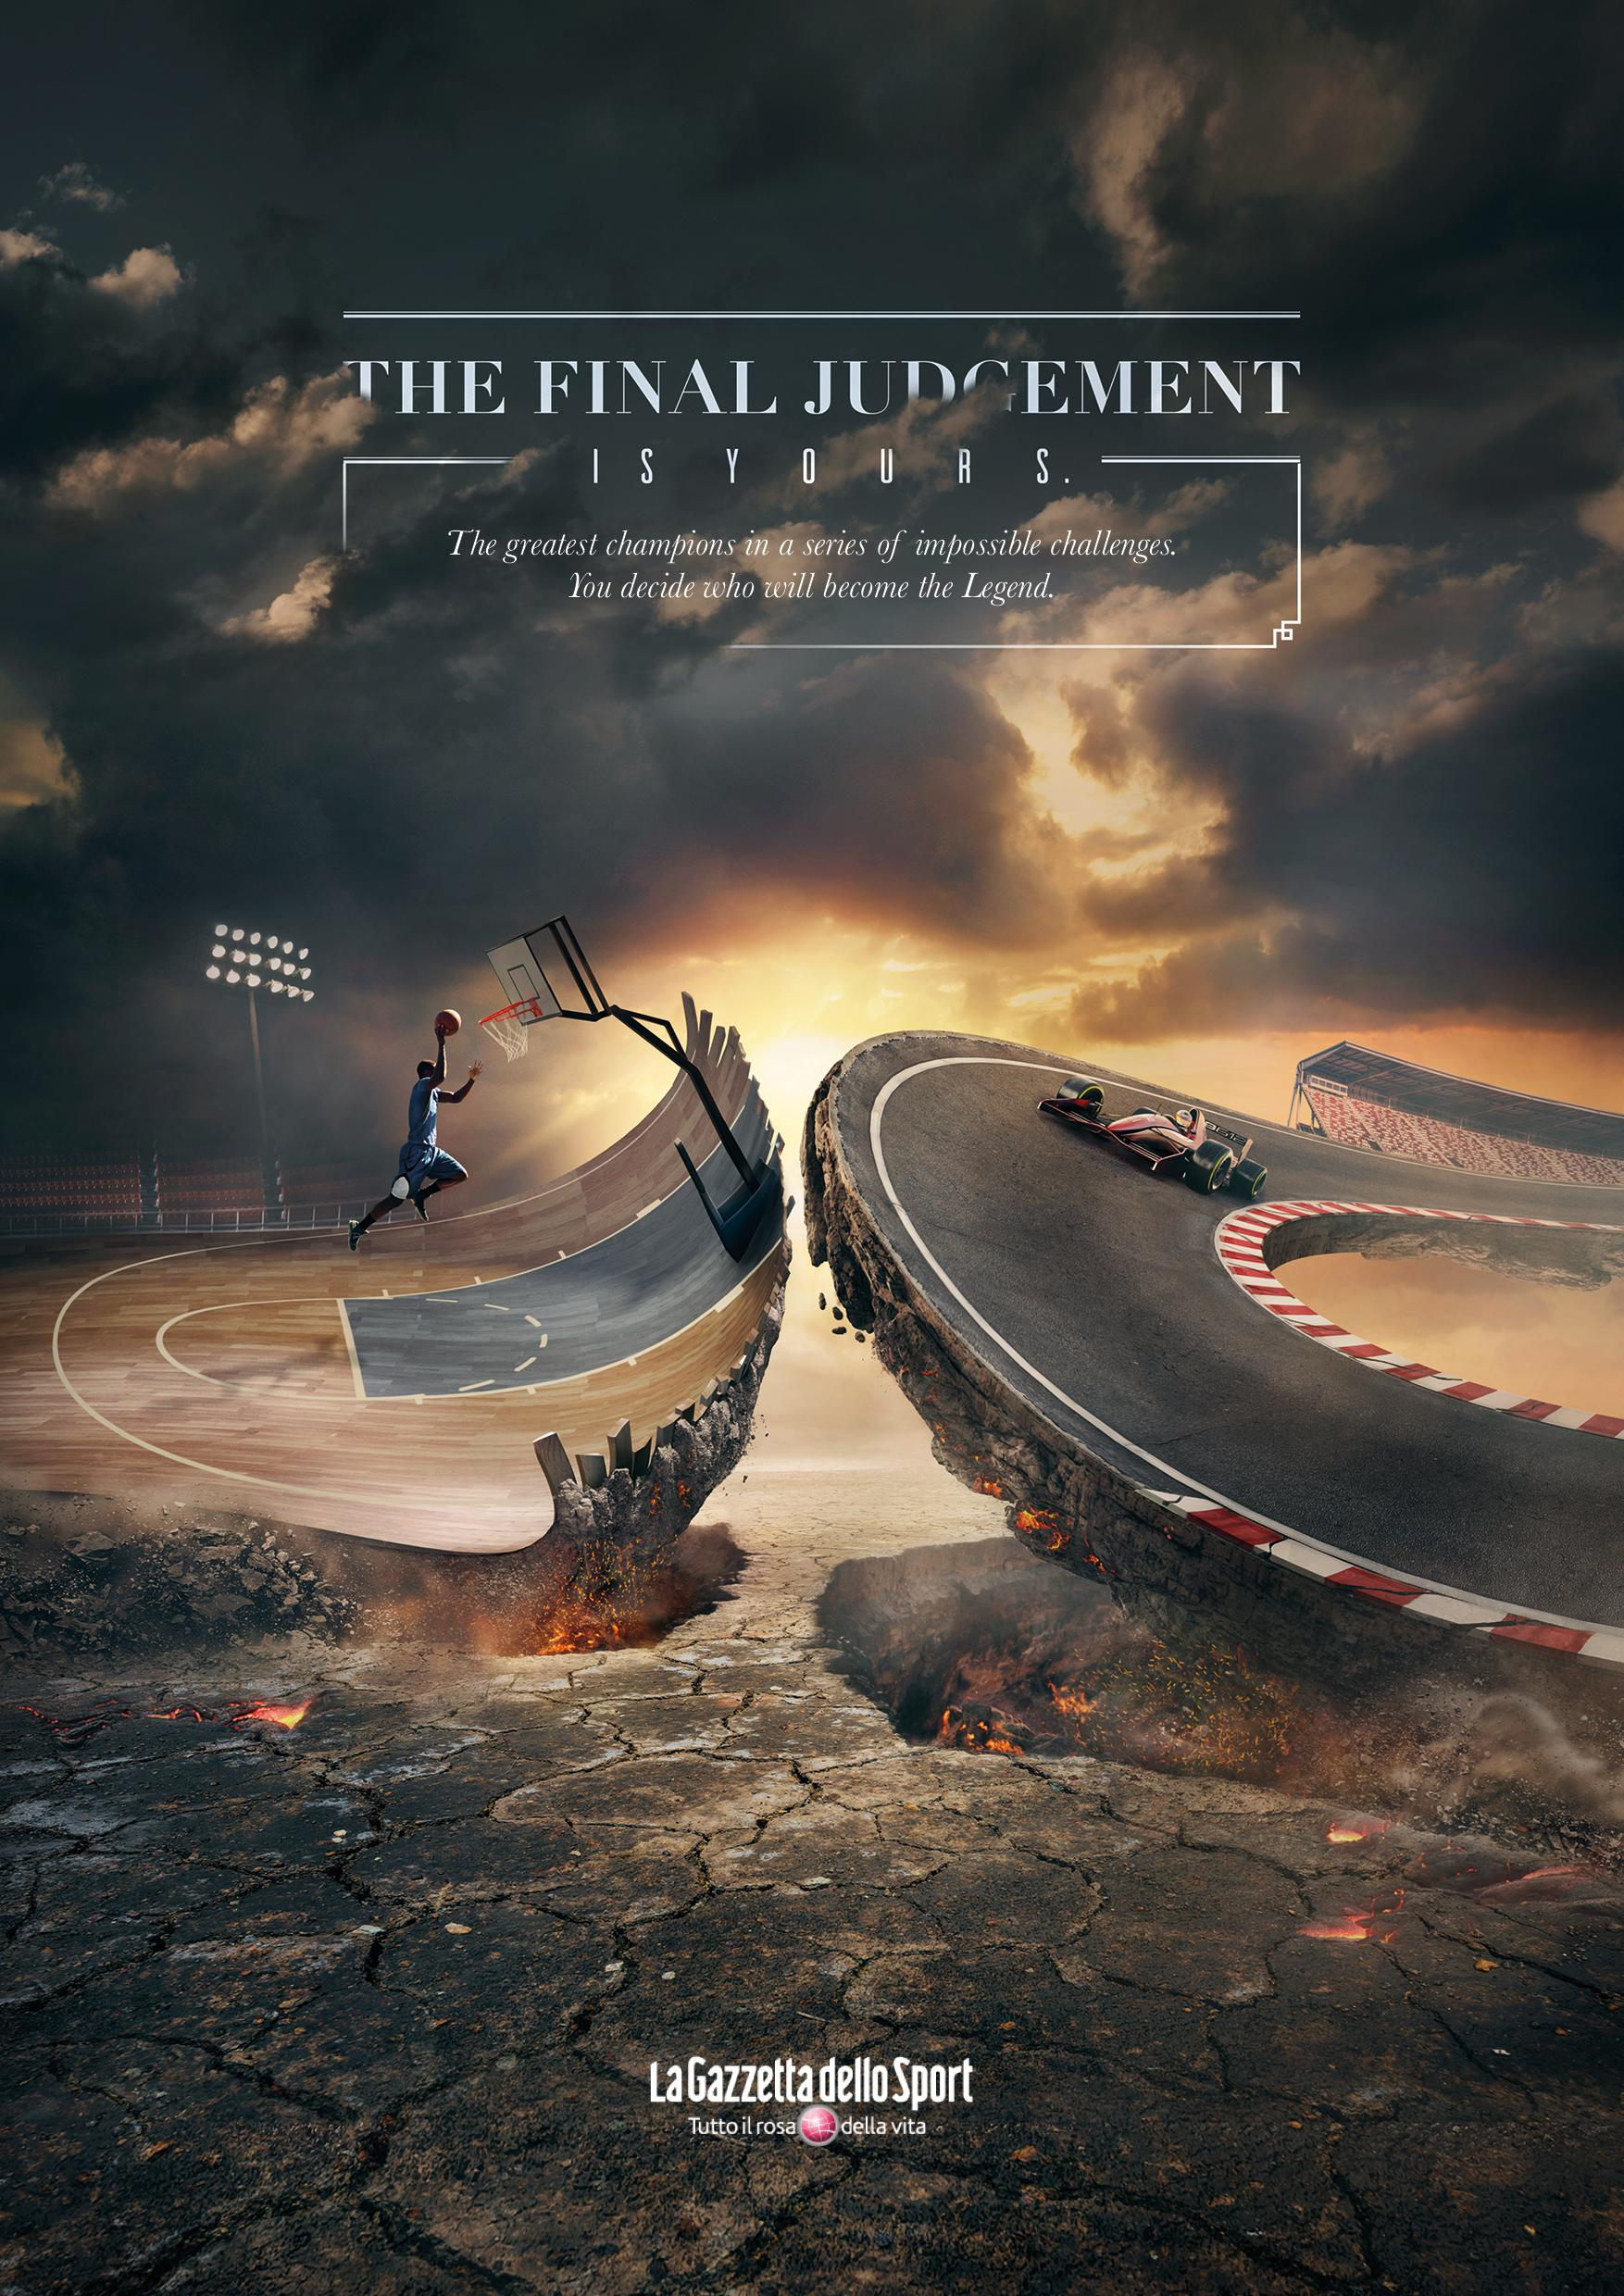 La Gazzetta dello Sport Print Ad - Final judgement, 1